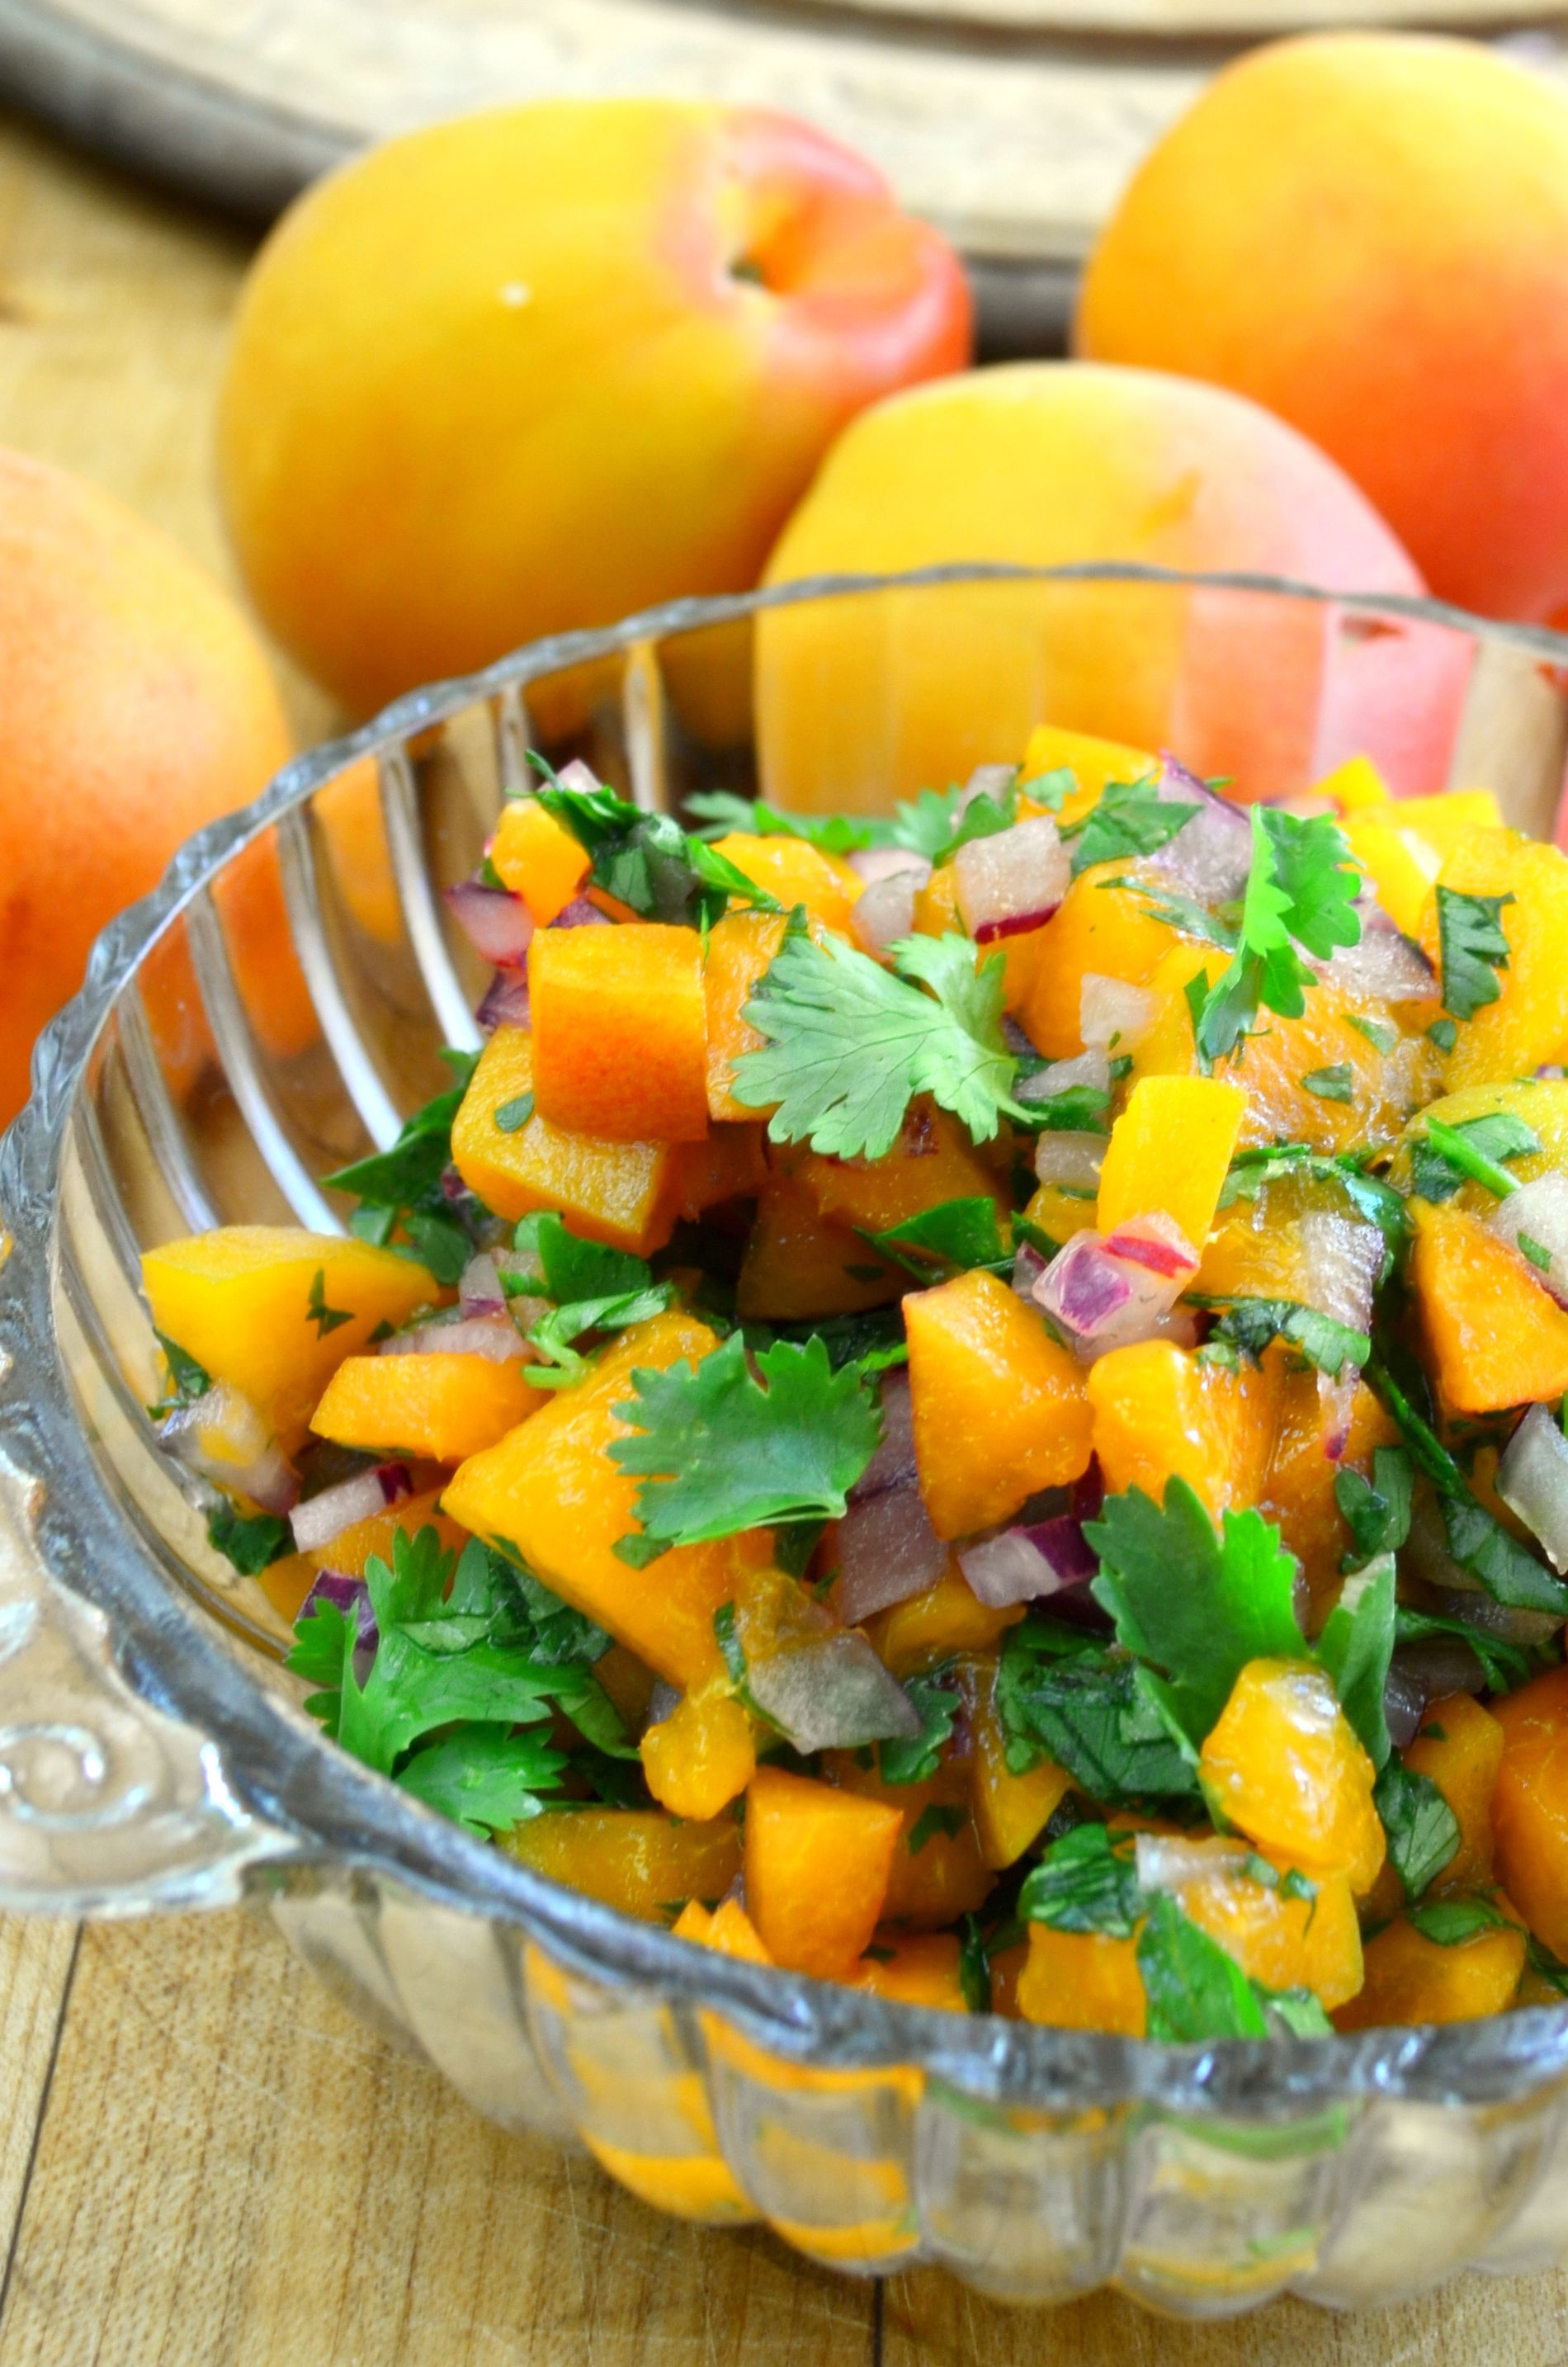 Apricot salsa is incredible served with any grilled meat